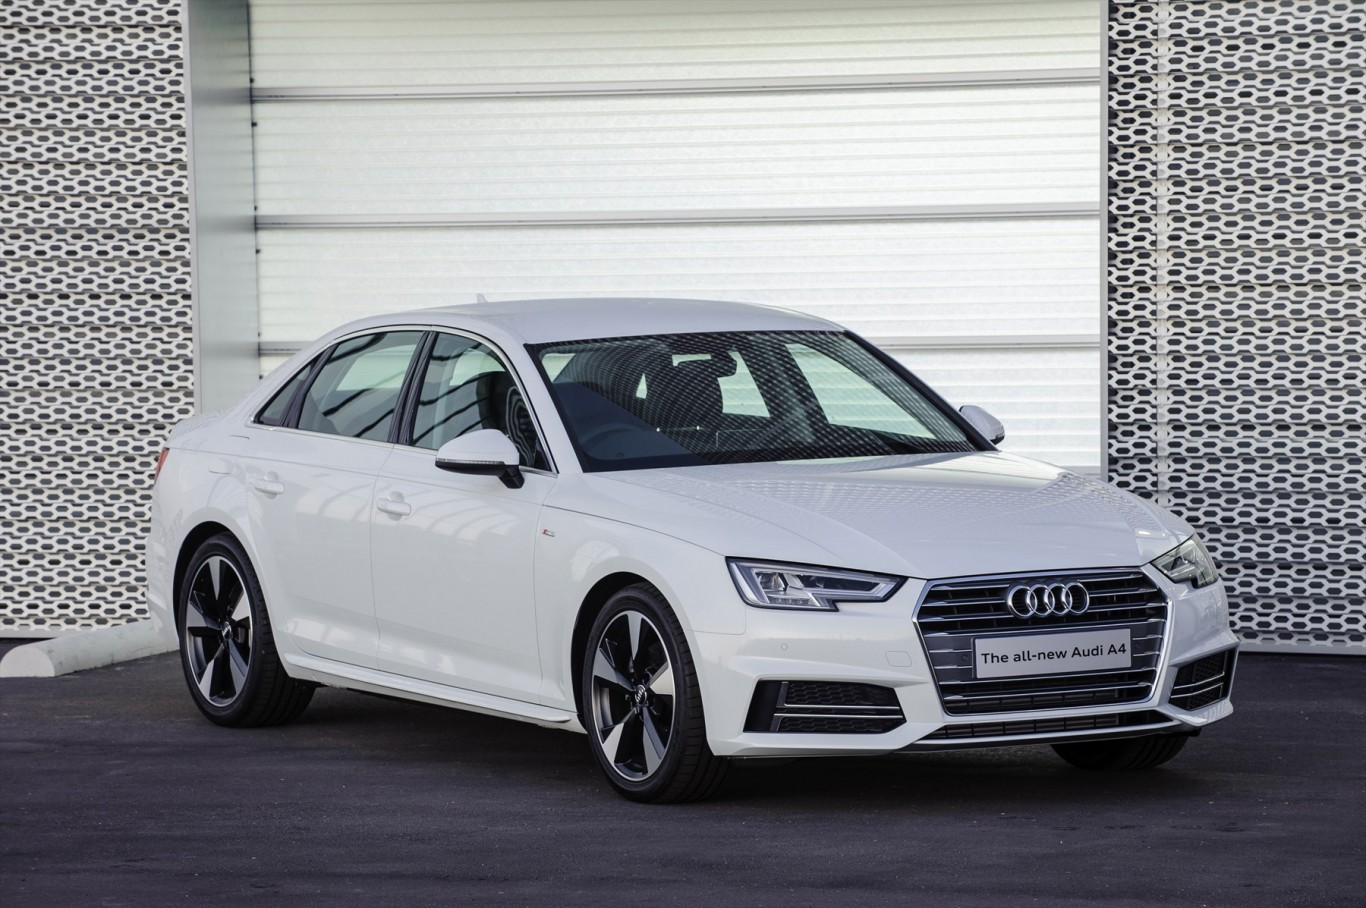 Progress is intense - the all new Audi A4